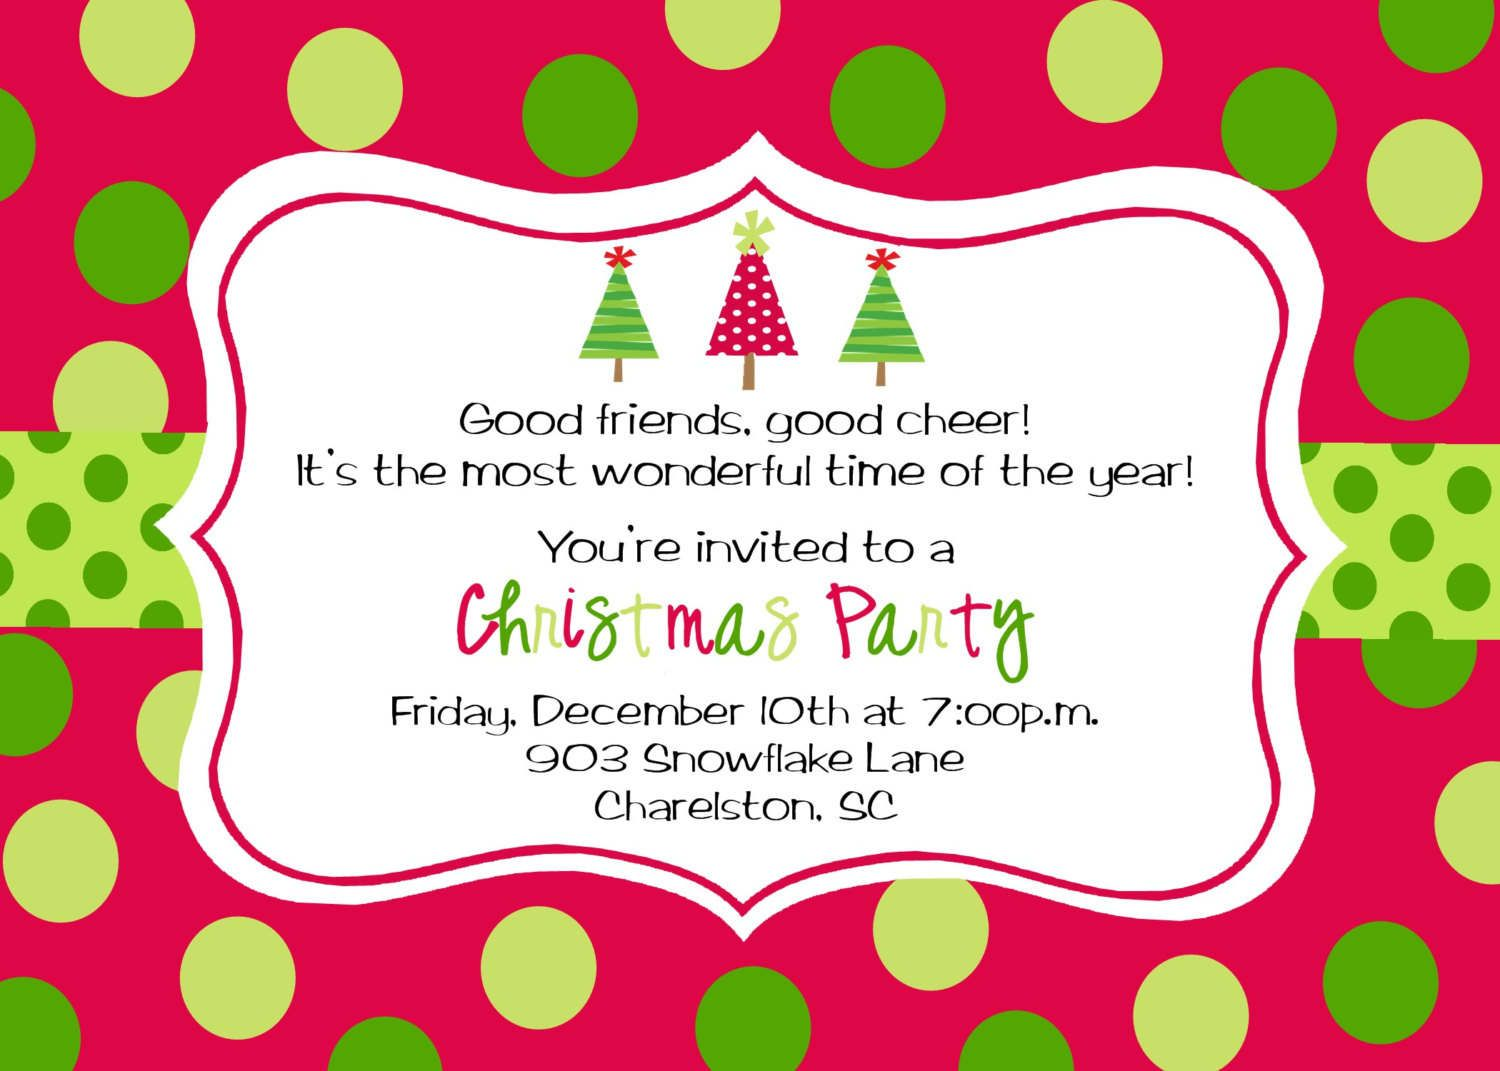 Colorful Christmas Holiday Party Invitation Template With Polkadot  Background Style  Christmas Dinner Invitations Templates Free